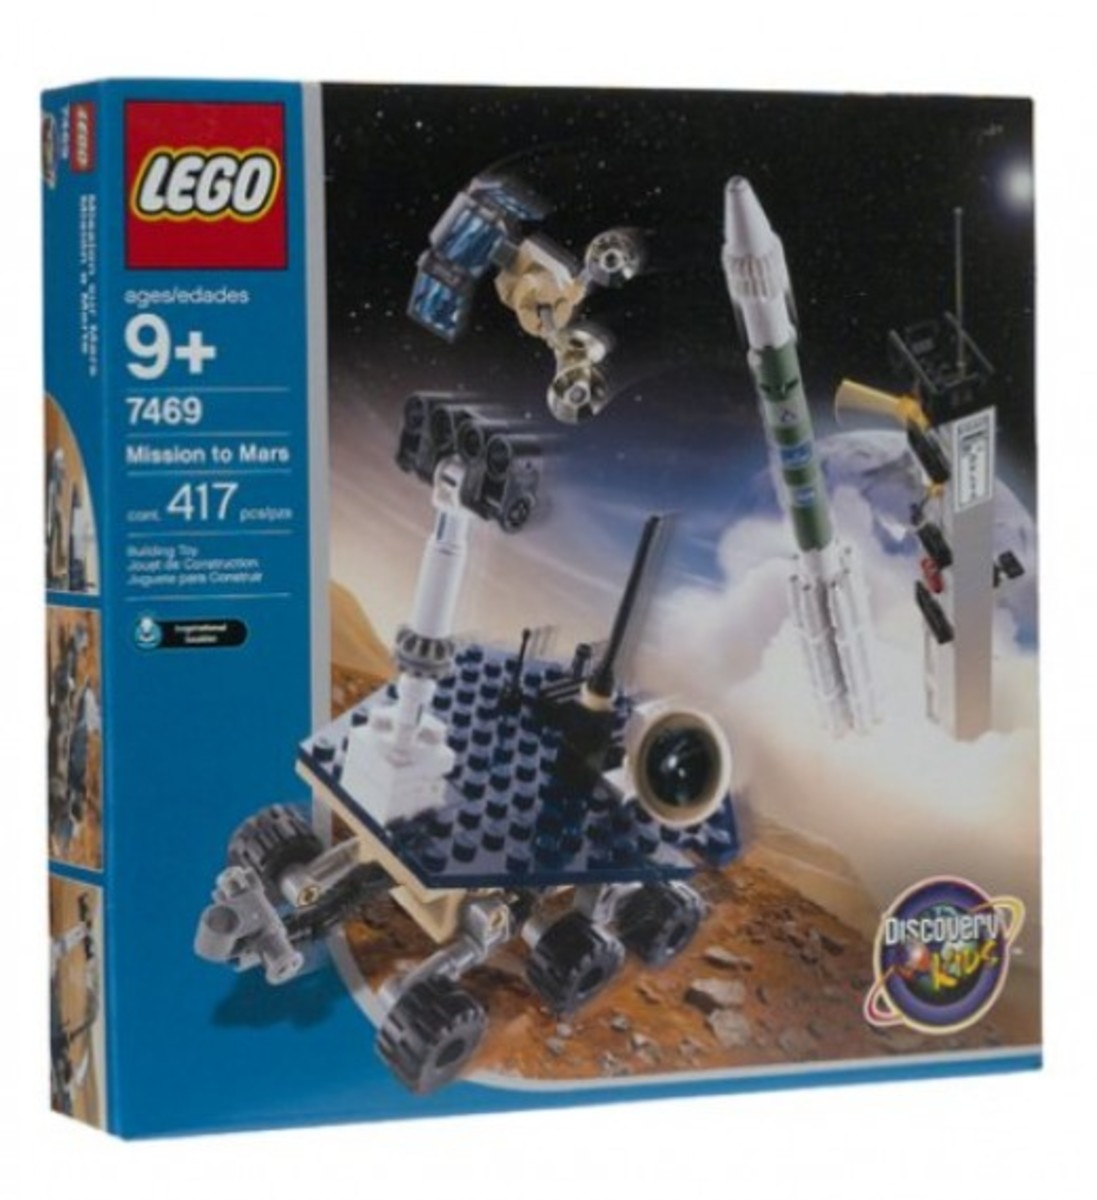 LEGO Discovery Mission To Mars 7469 Box